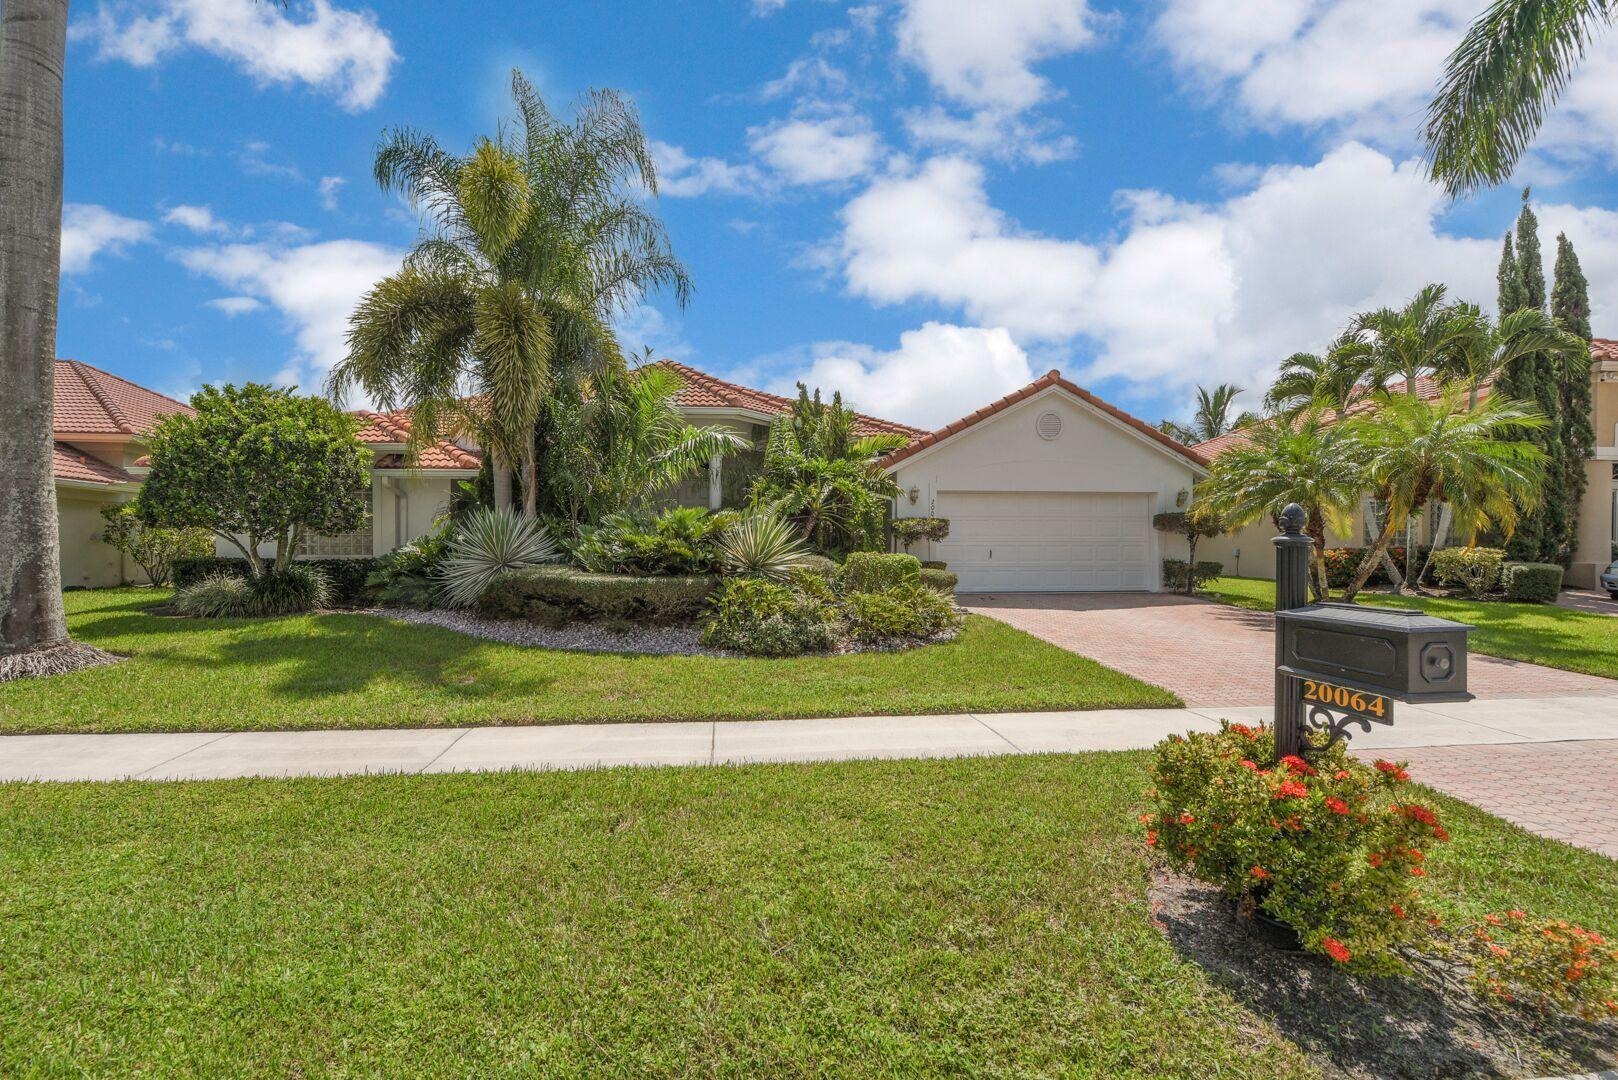 Home for sale in Boca Isles South PH 5F Boca Raton Florida